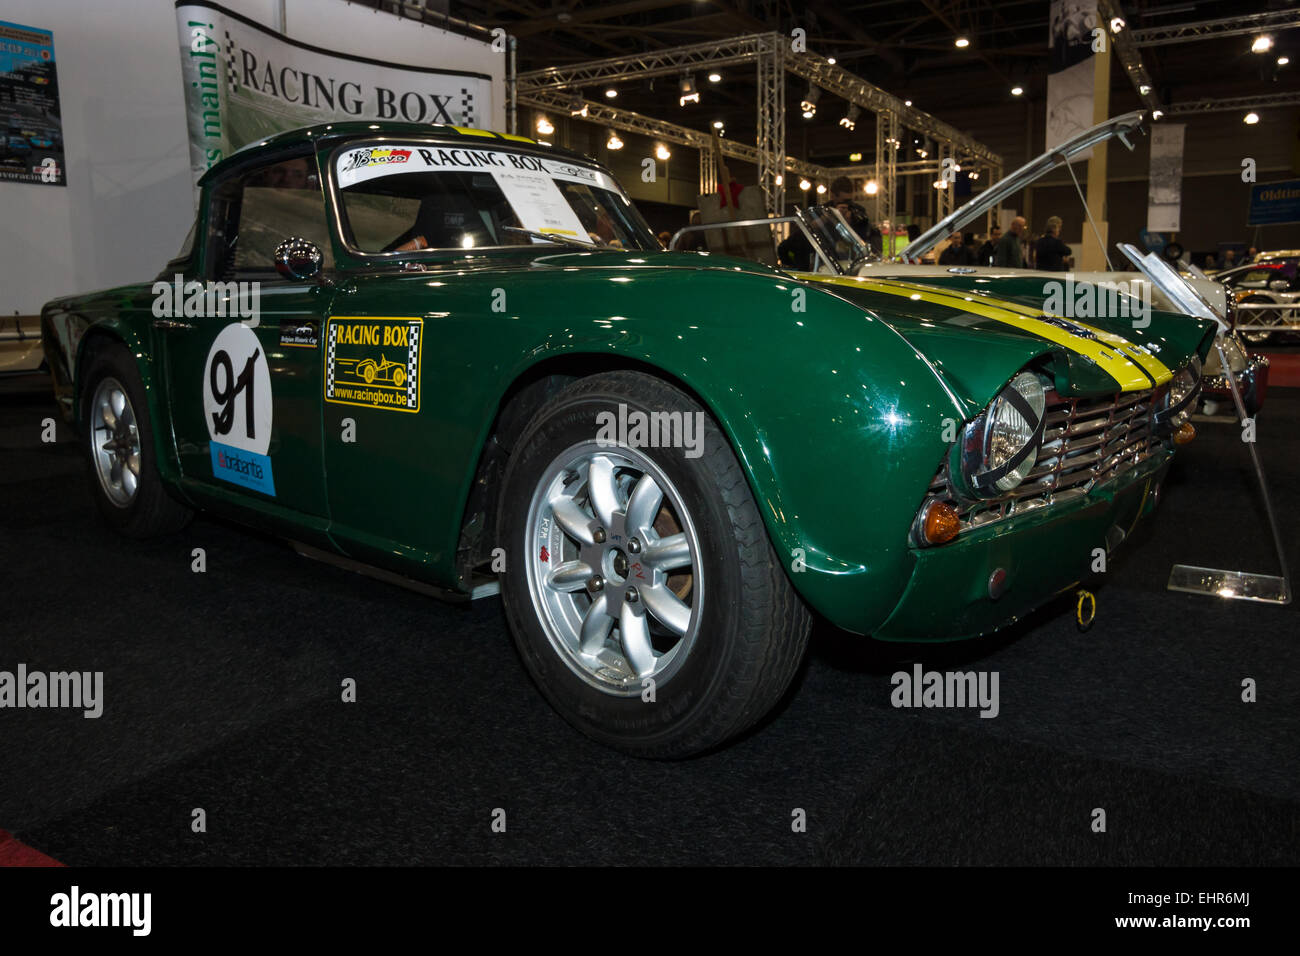 Racing Car Triumph Tr4 1963 Stock Photo 79800802 Alamy